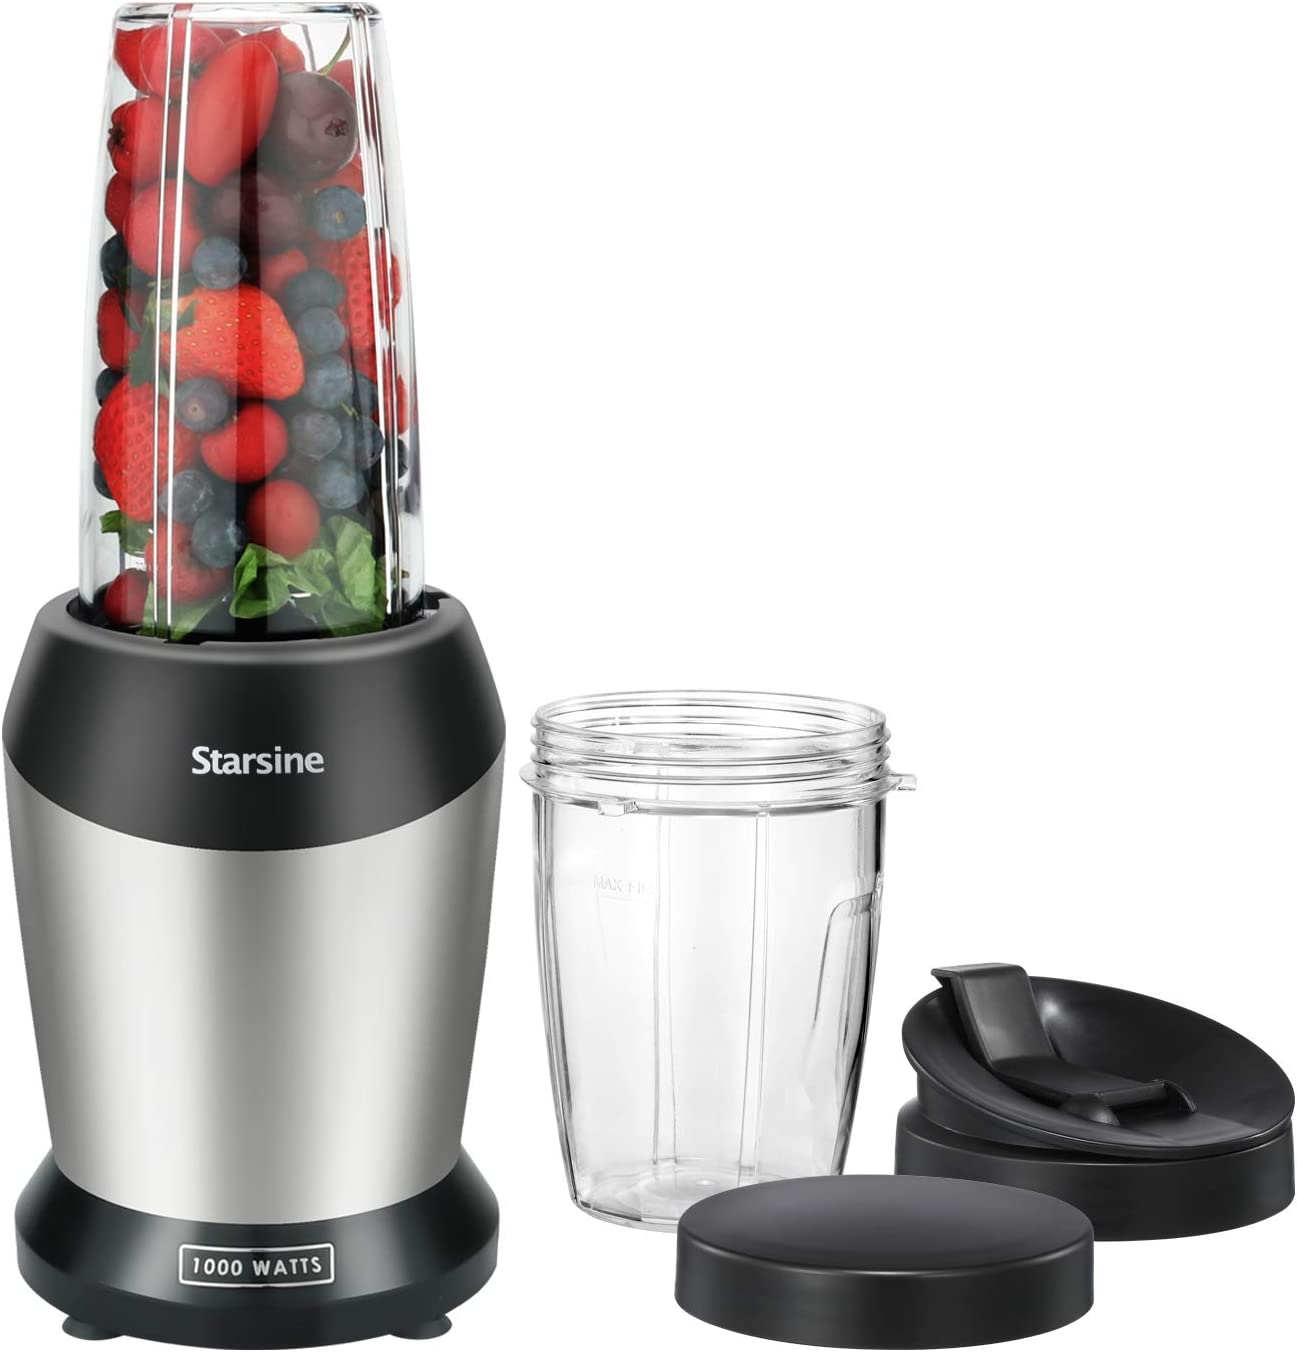 Starsine Personal Blender for Shakes and Smoothies,with 1000-Watt Base and 27 oz and 16 oz cups, BPA free with Spout Lids Black/Silver